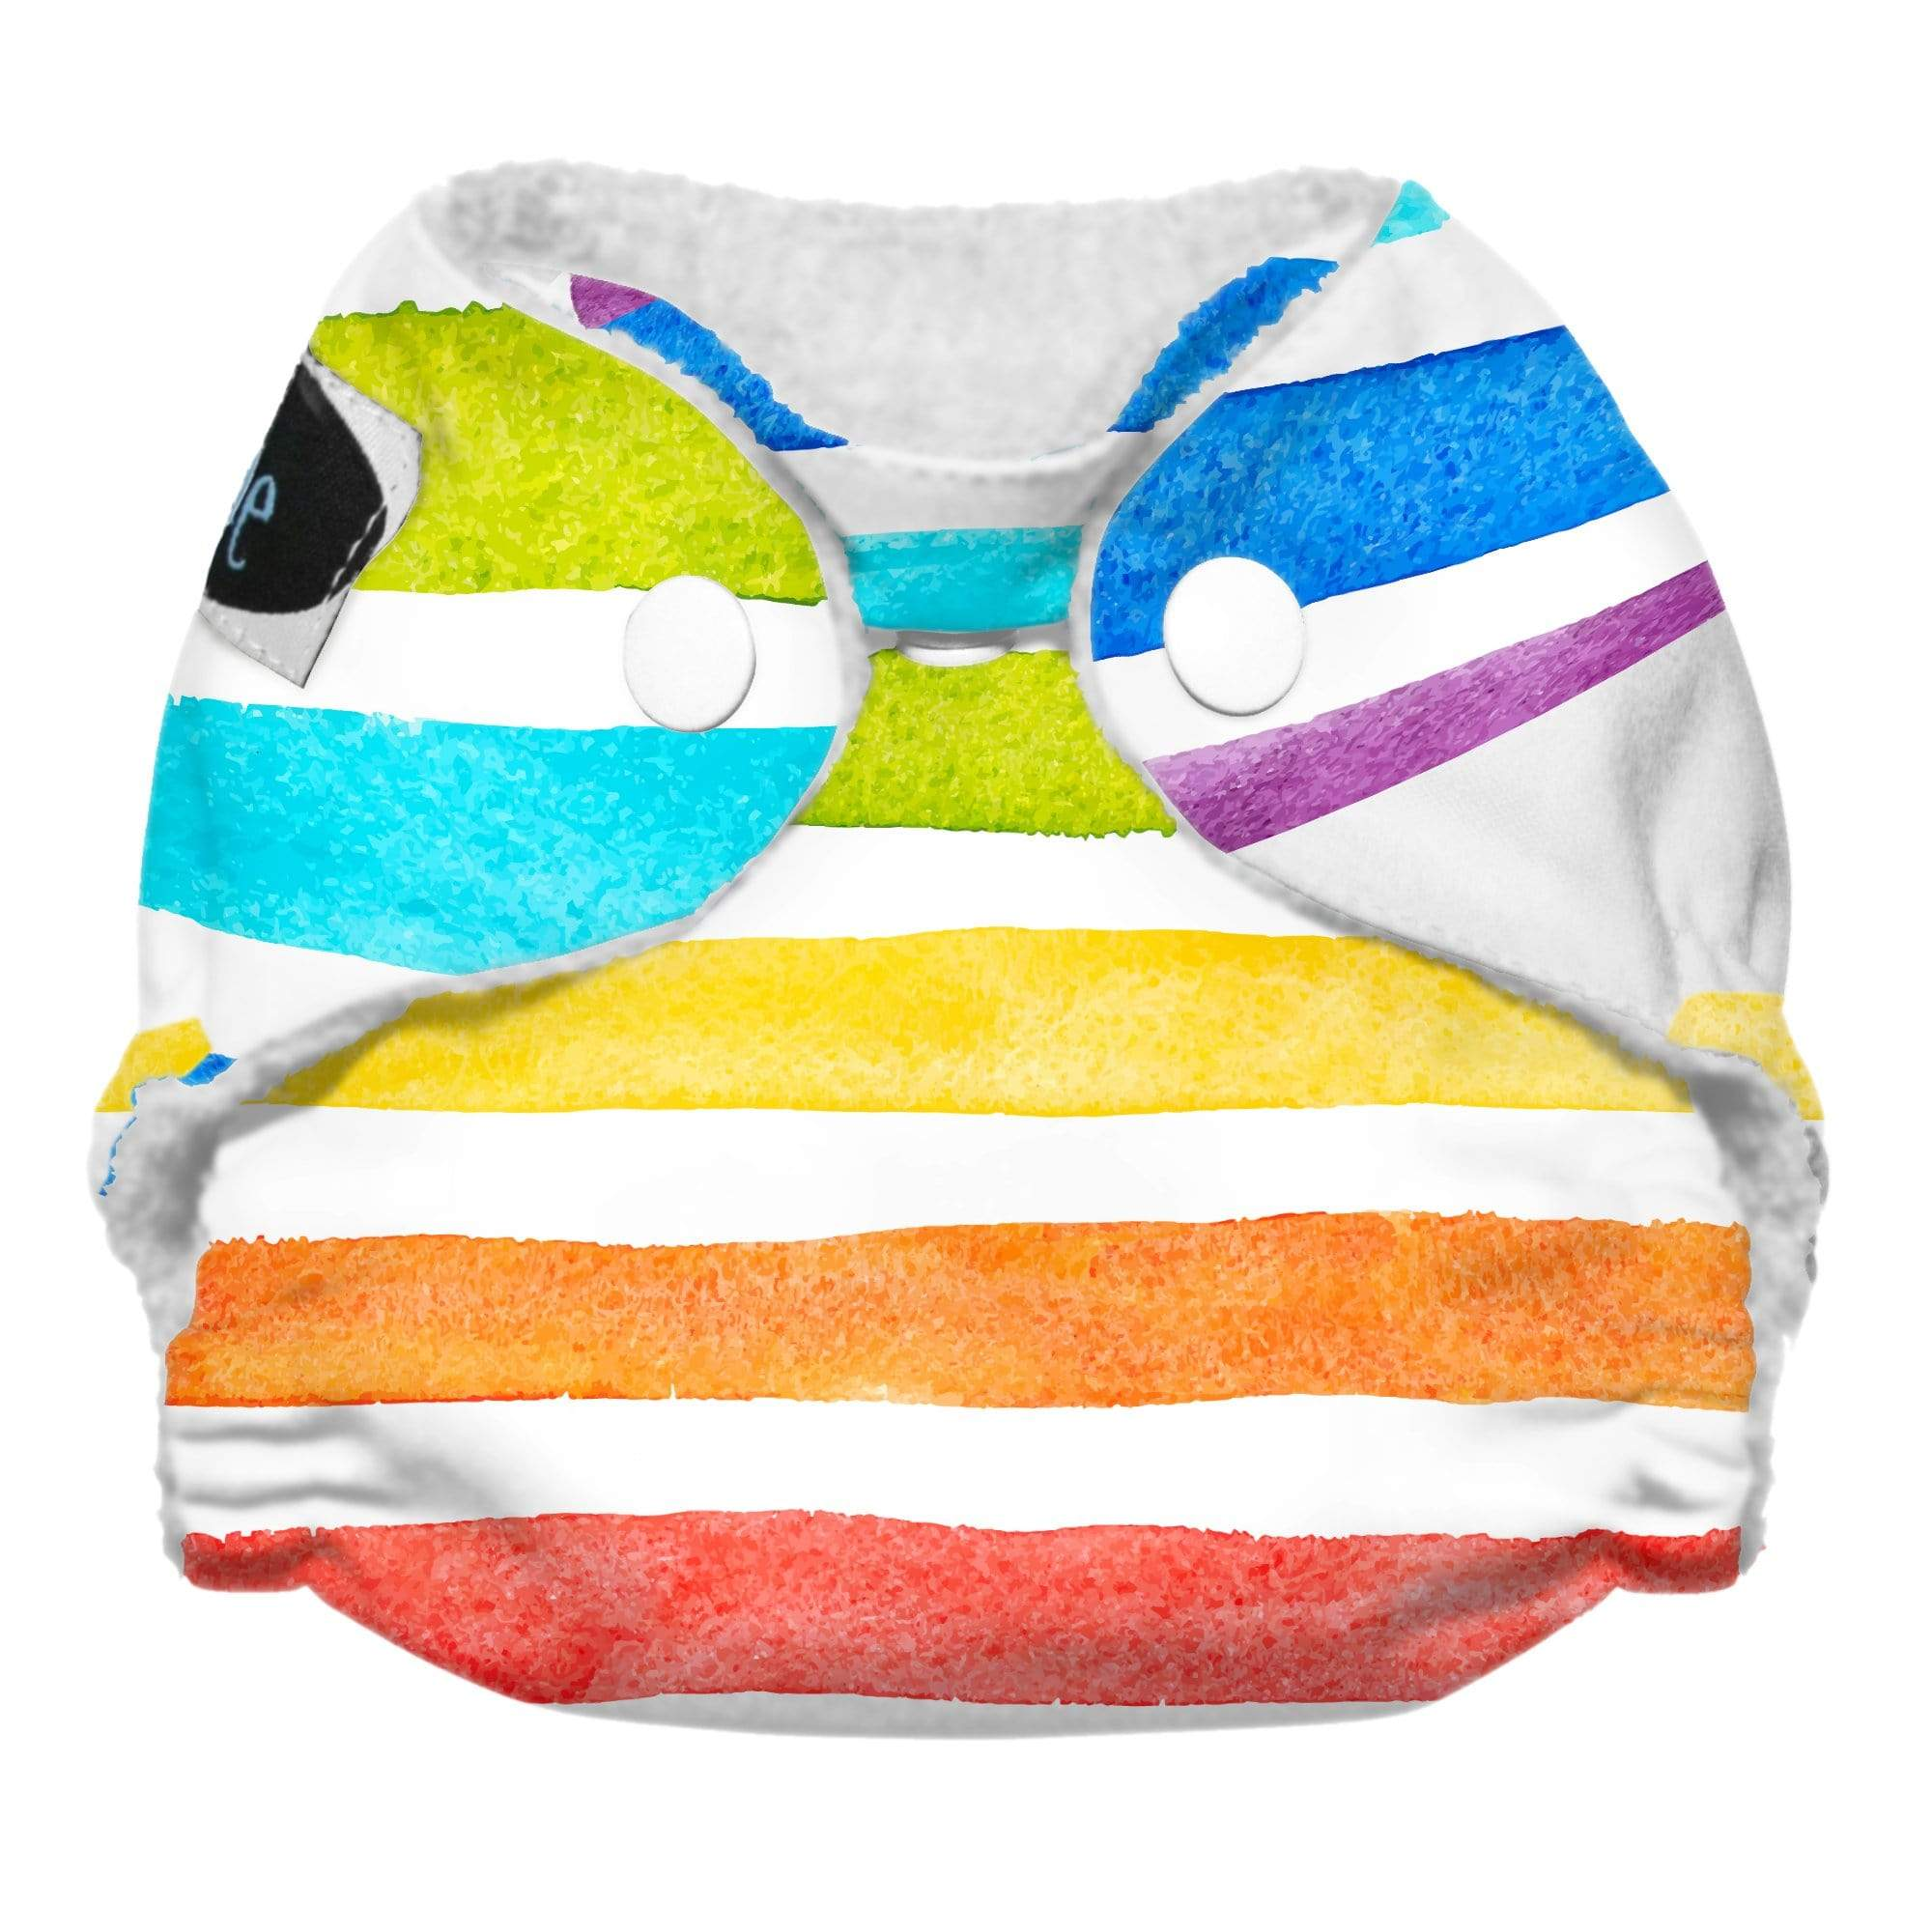 Imagine Newborn Snap Stay Dry All in One Diaper - Rainbow Connection